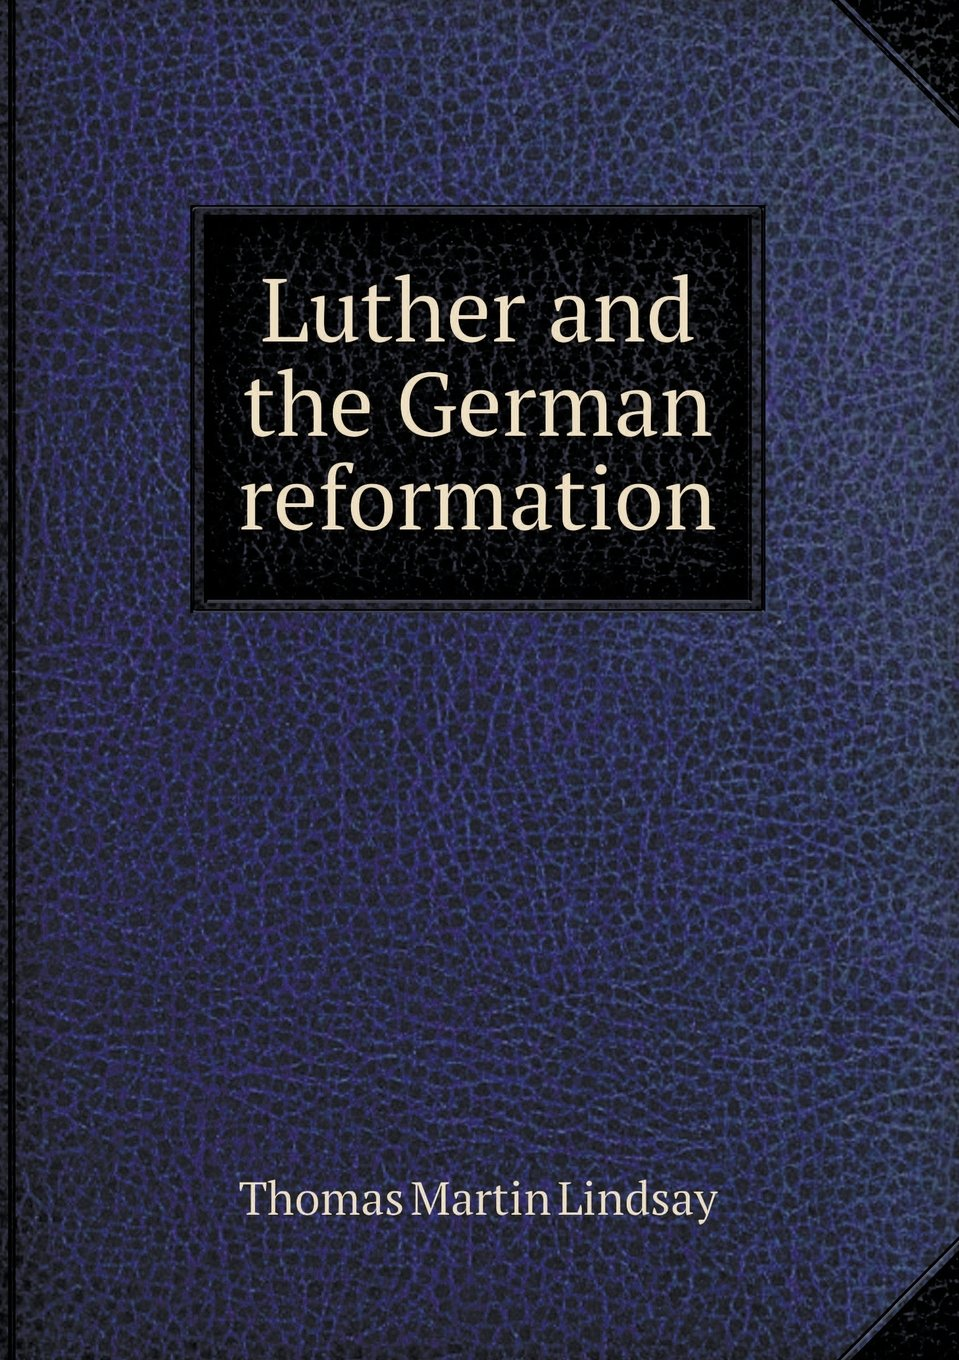 Download Luther and the German reformation PDF